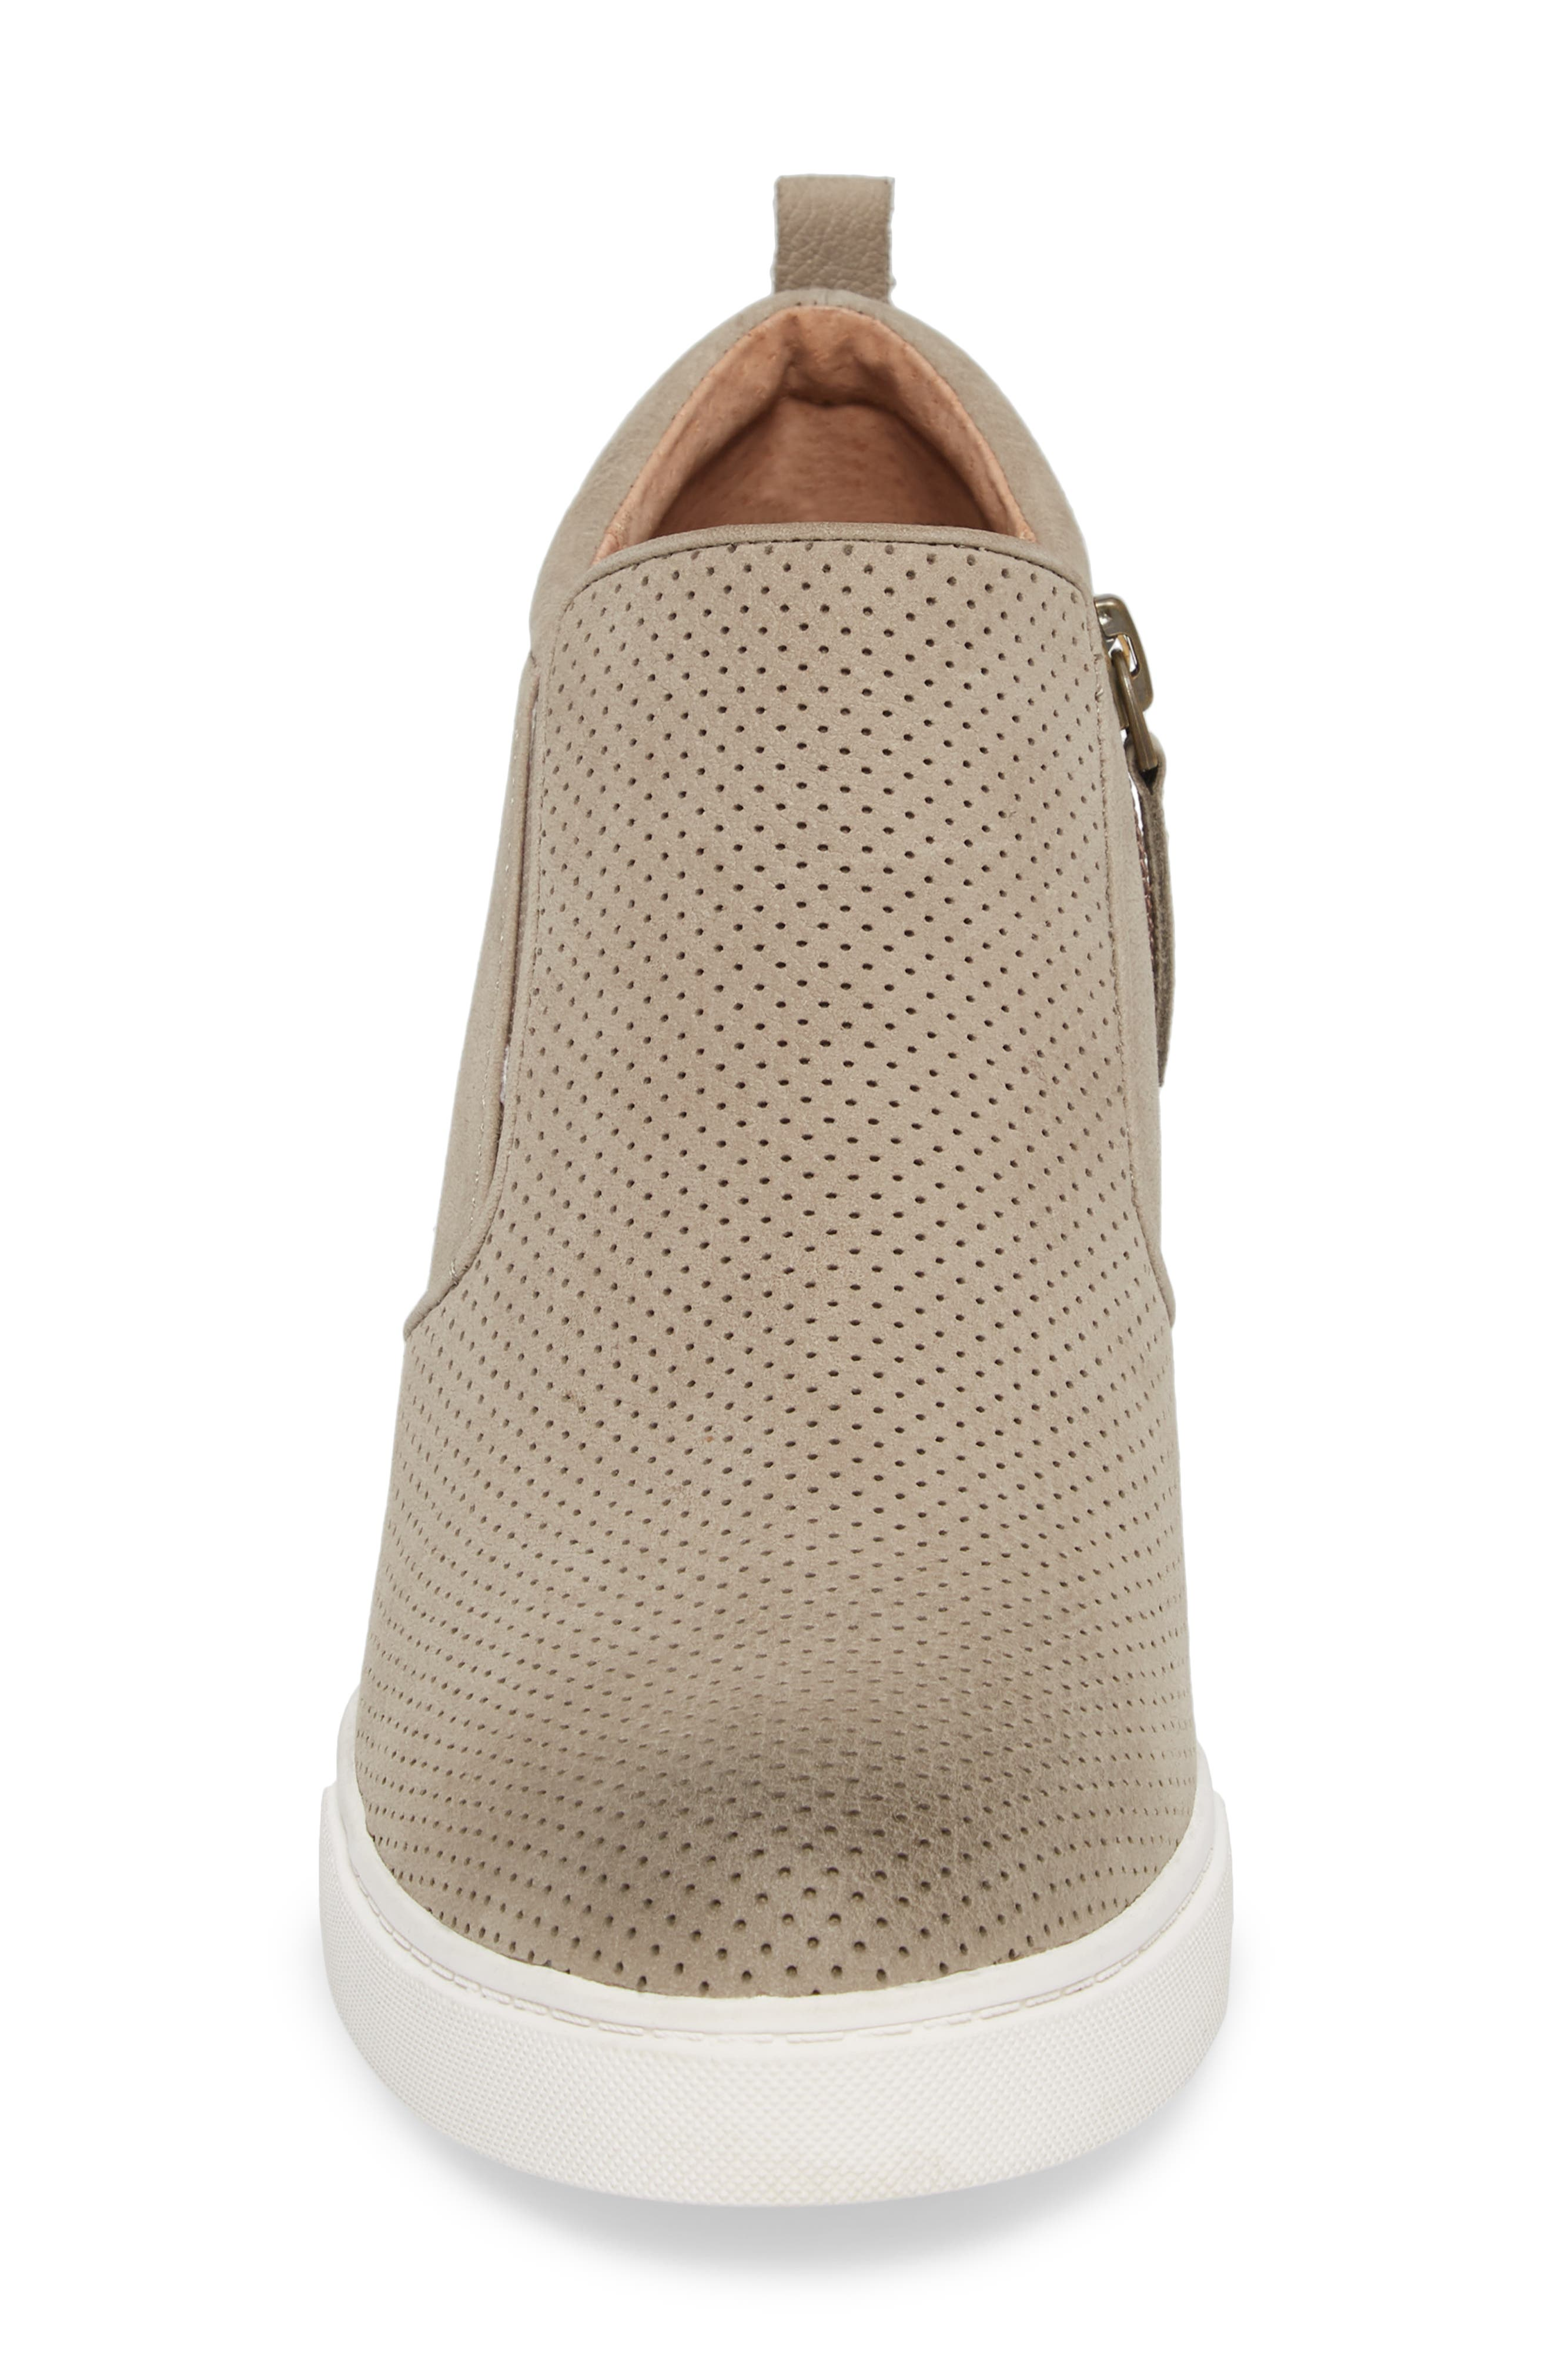 Aiden Wedge Sneaker,                             Alternate thumbnail 4, color,                             260